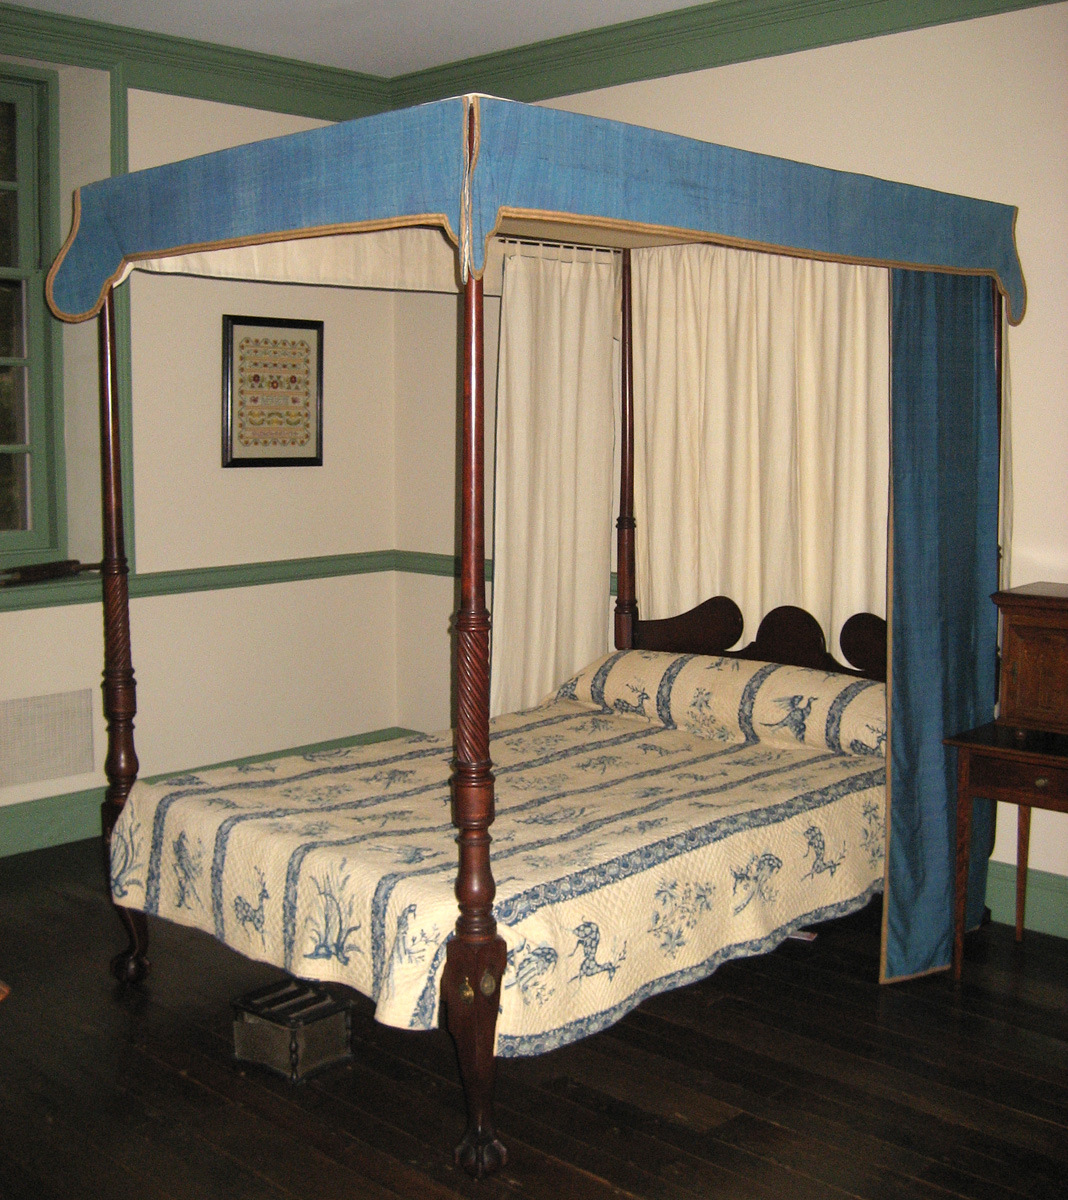 1957.0040.002 bedstead with bed hangings 1964.0512 and quilt 1955.0656 J, K view 1